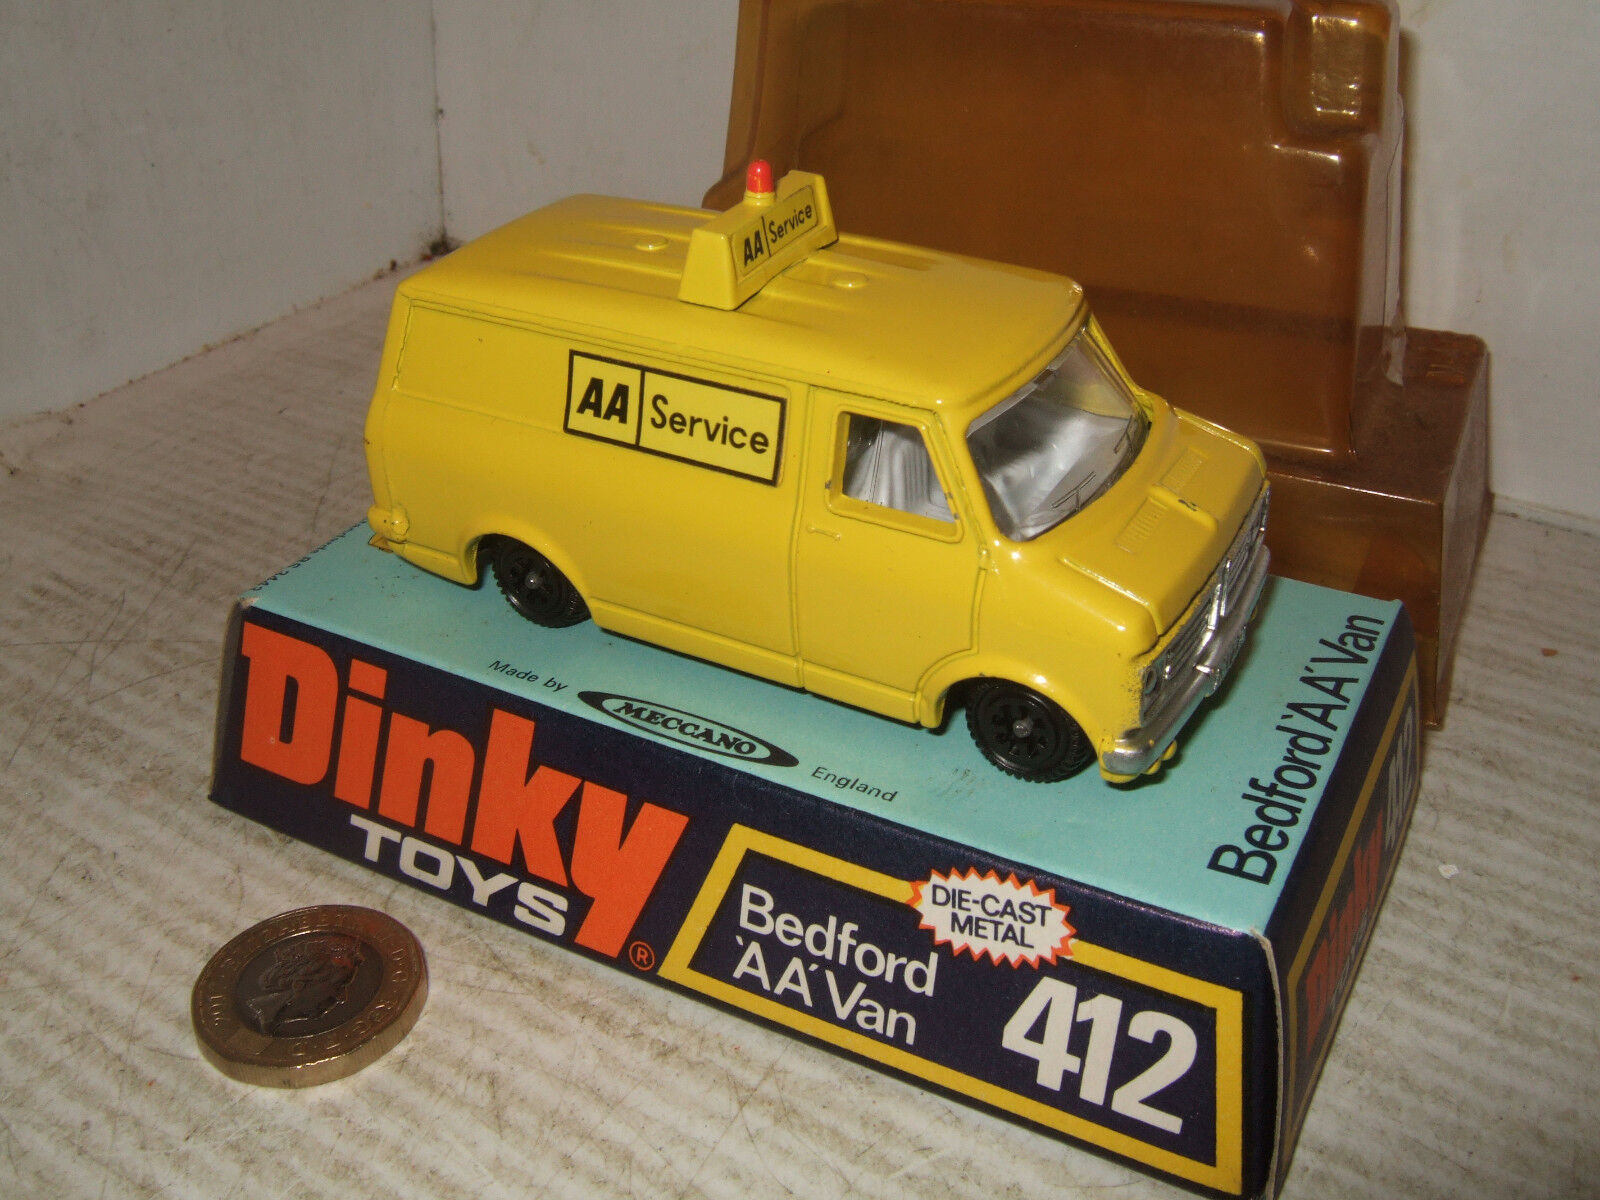 Rare Vintage Dinky Toys 412 Bedford AA Van Diecast Model with Damaged Blister